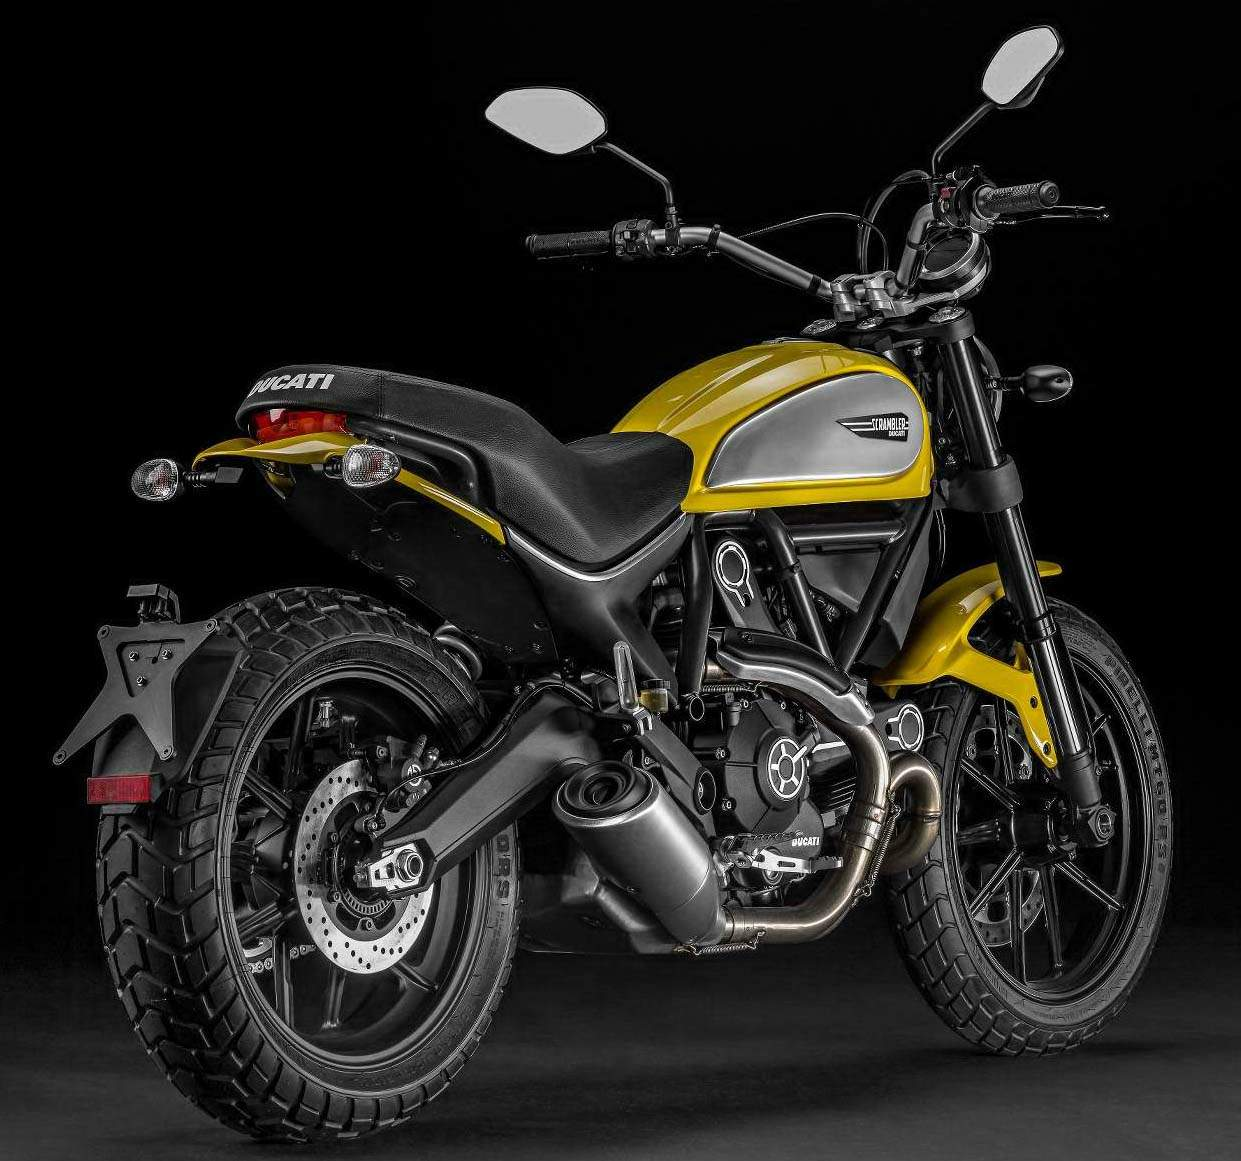 Peachy Ducati Scrambler Icon Machost Co Dining Chair Design Ideas Machostcouk